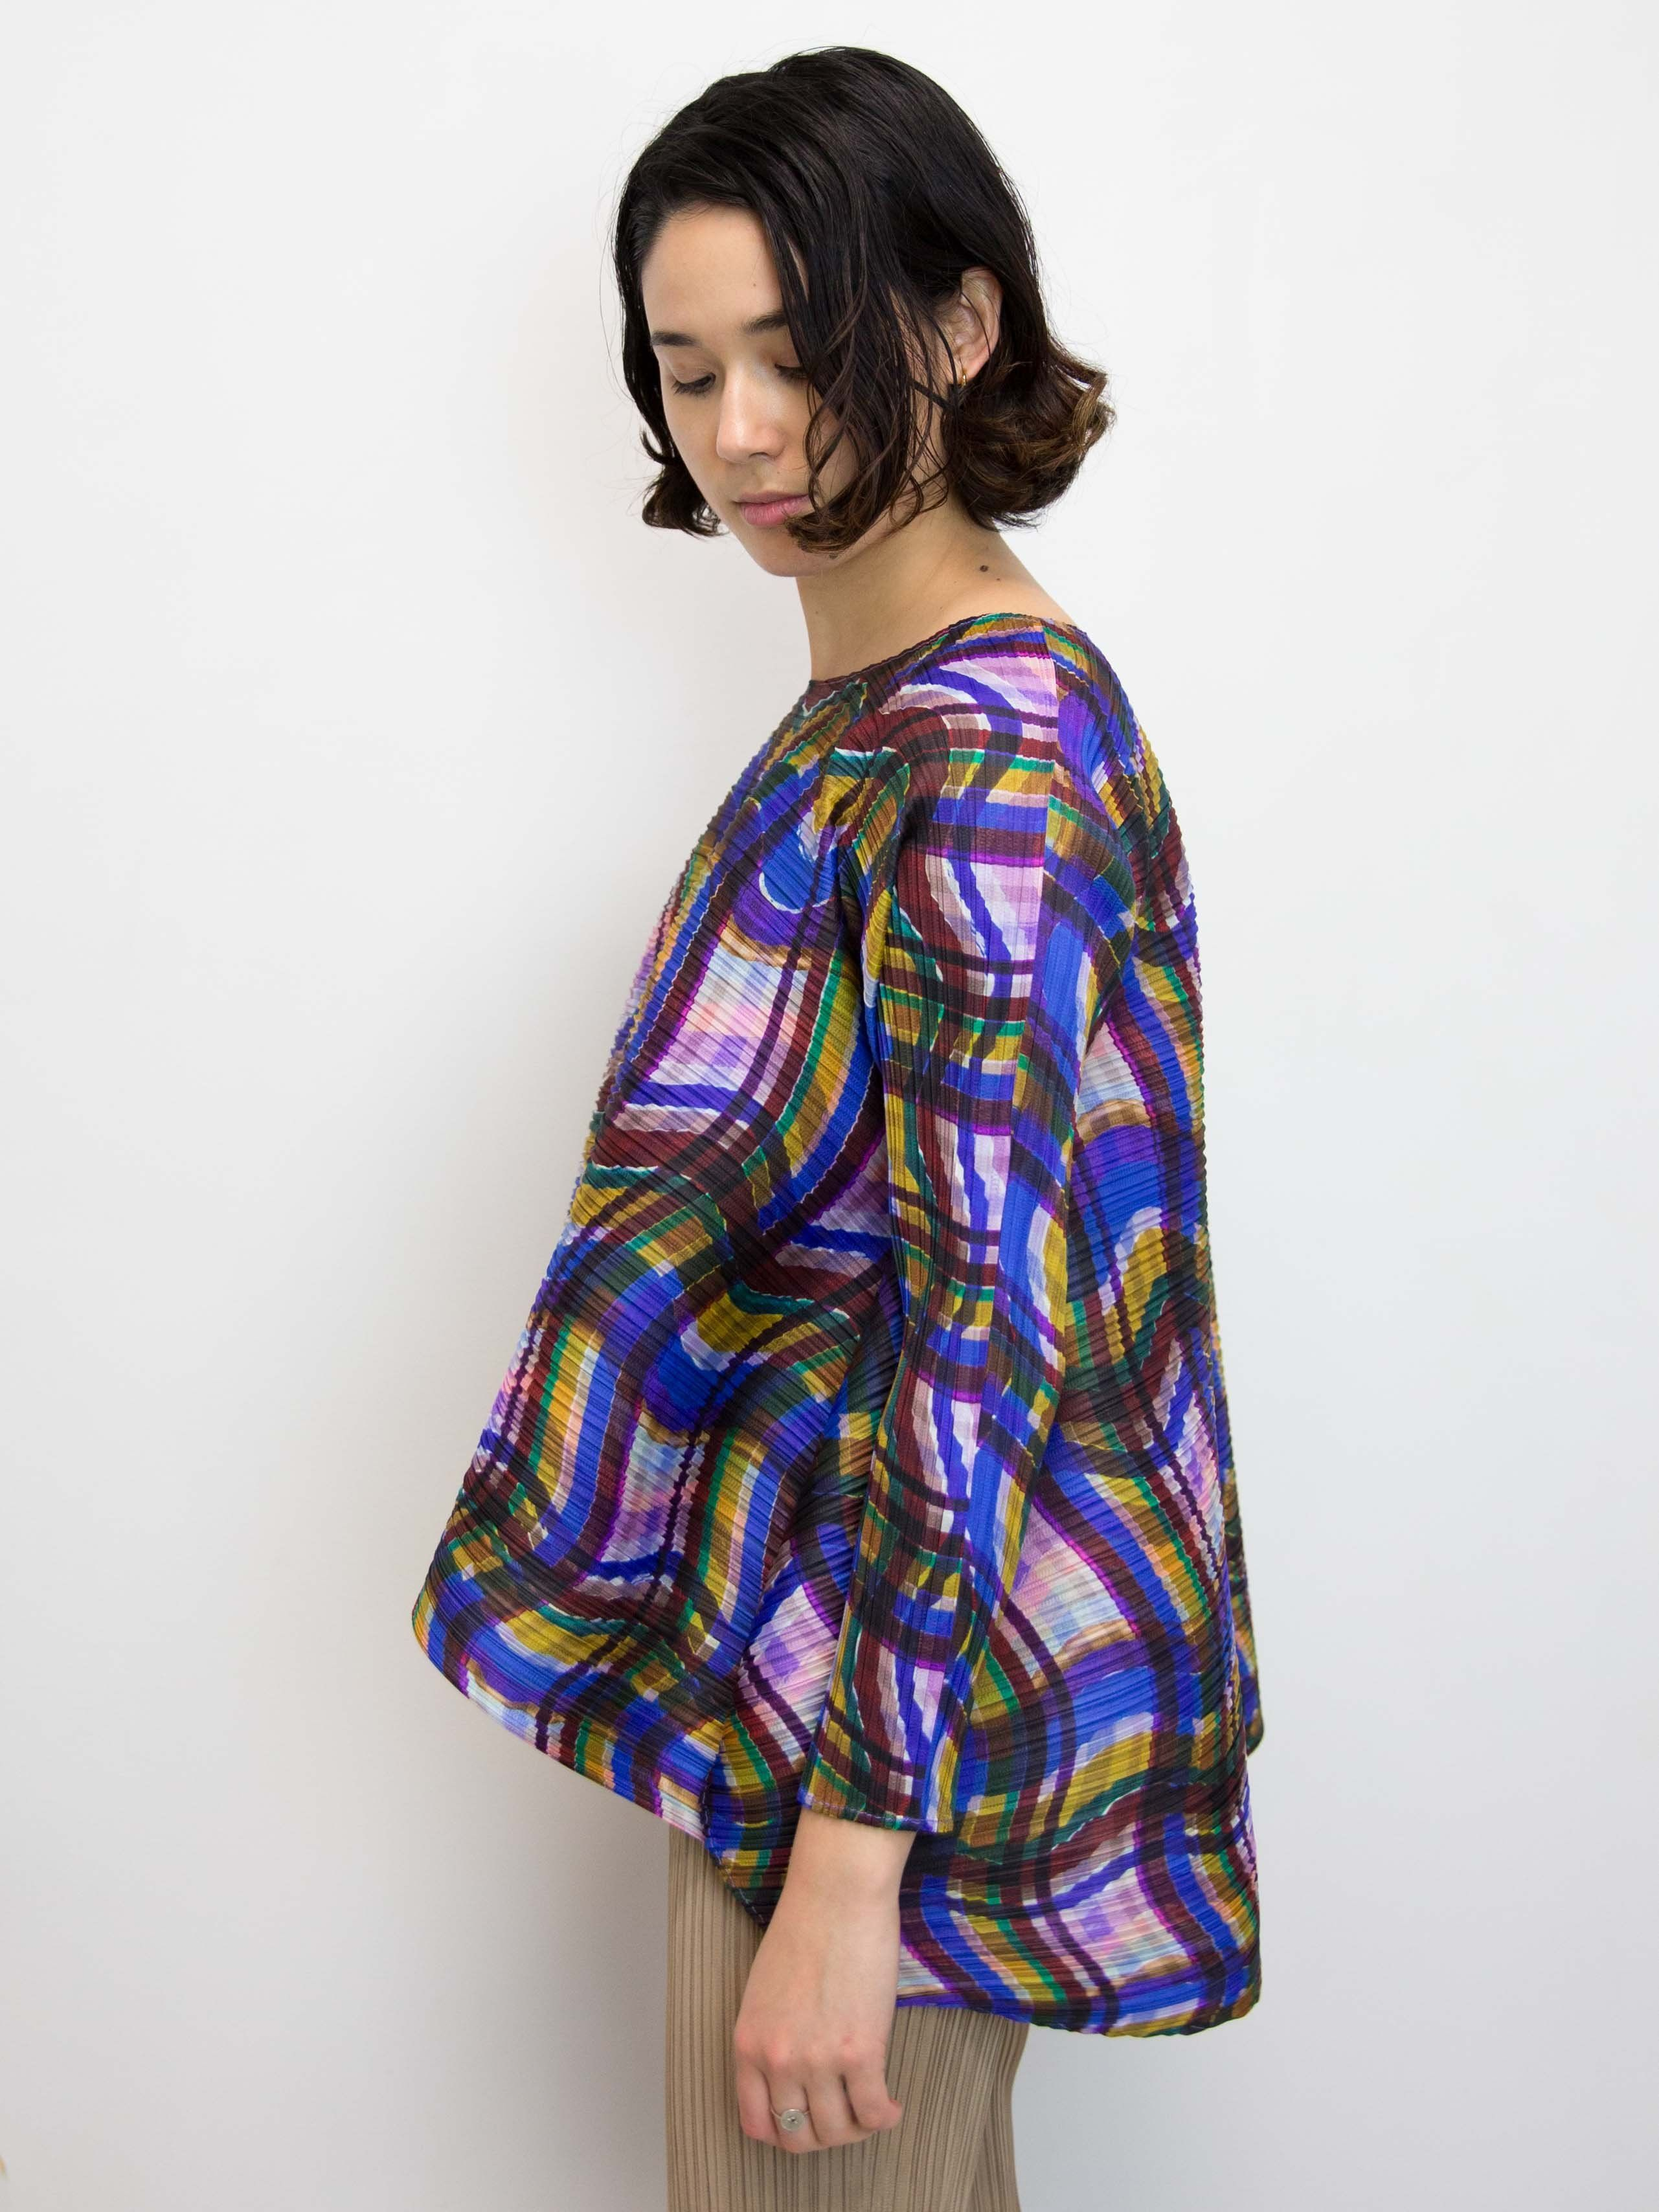 7d25386af992 PLEATS PLEASE ISSEY MIYAKE Stratum Check Top